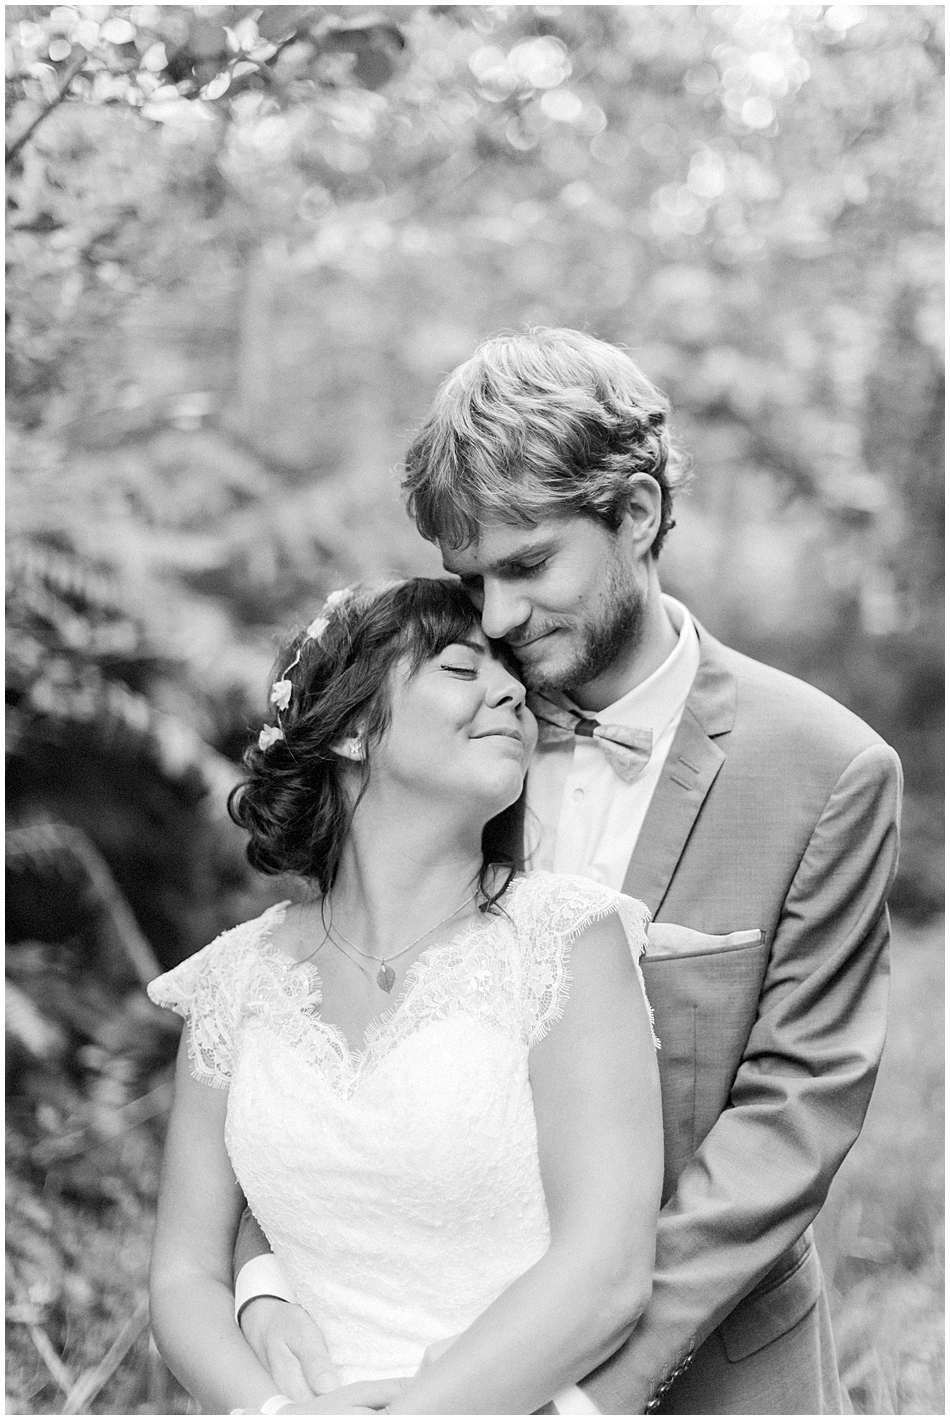 Marie-Alice G-Photographe Mariage France Normandie - Photographe Mariage Manche valognes cherbourg - Wedding Photographer France_0165